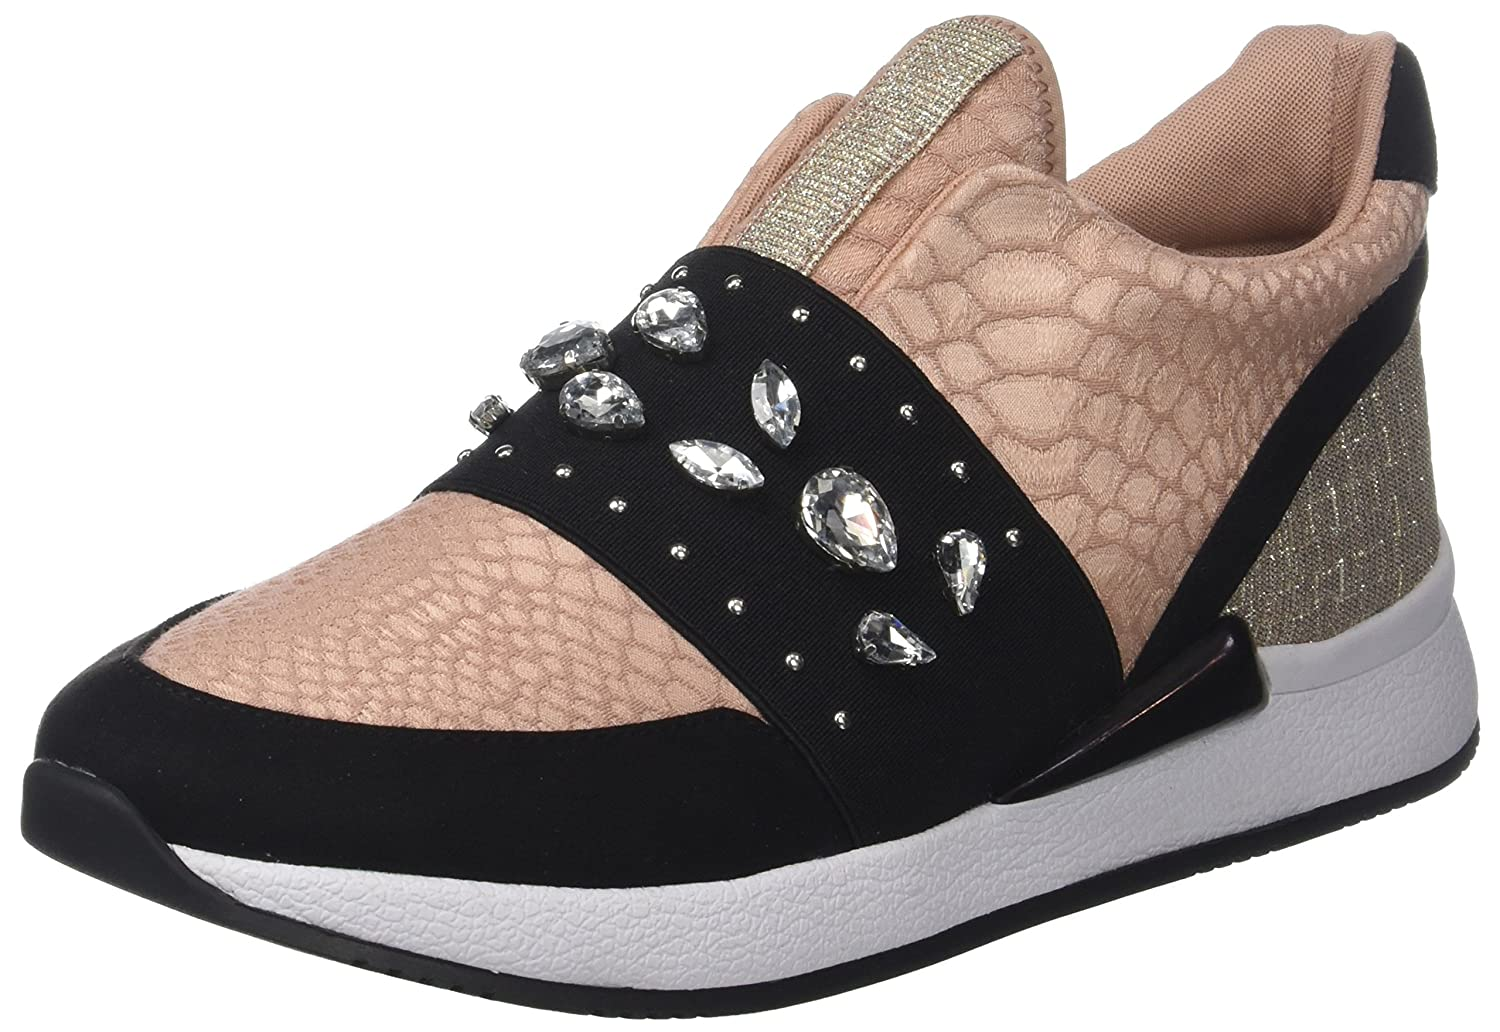 Call Call Call It Spring EU Damen Adirema Turnschuhe 37c583